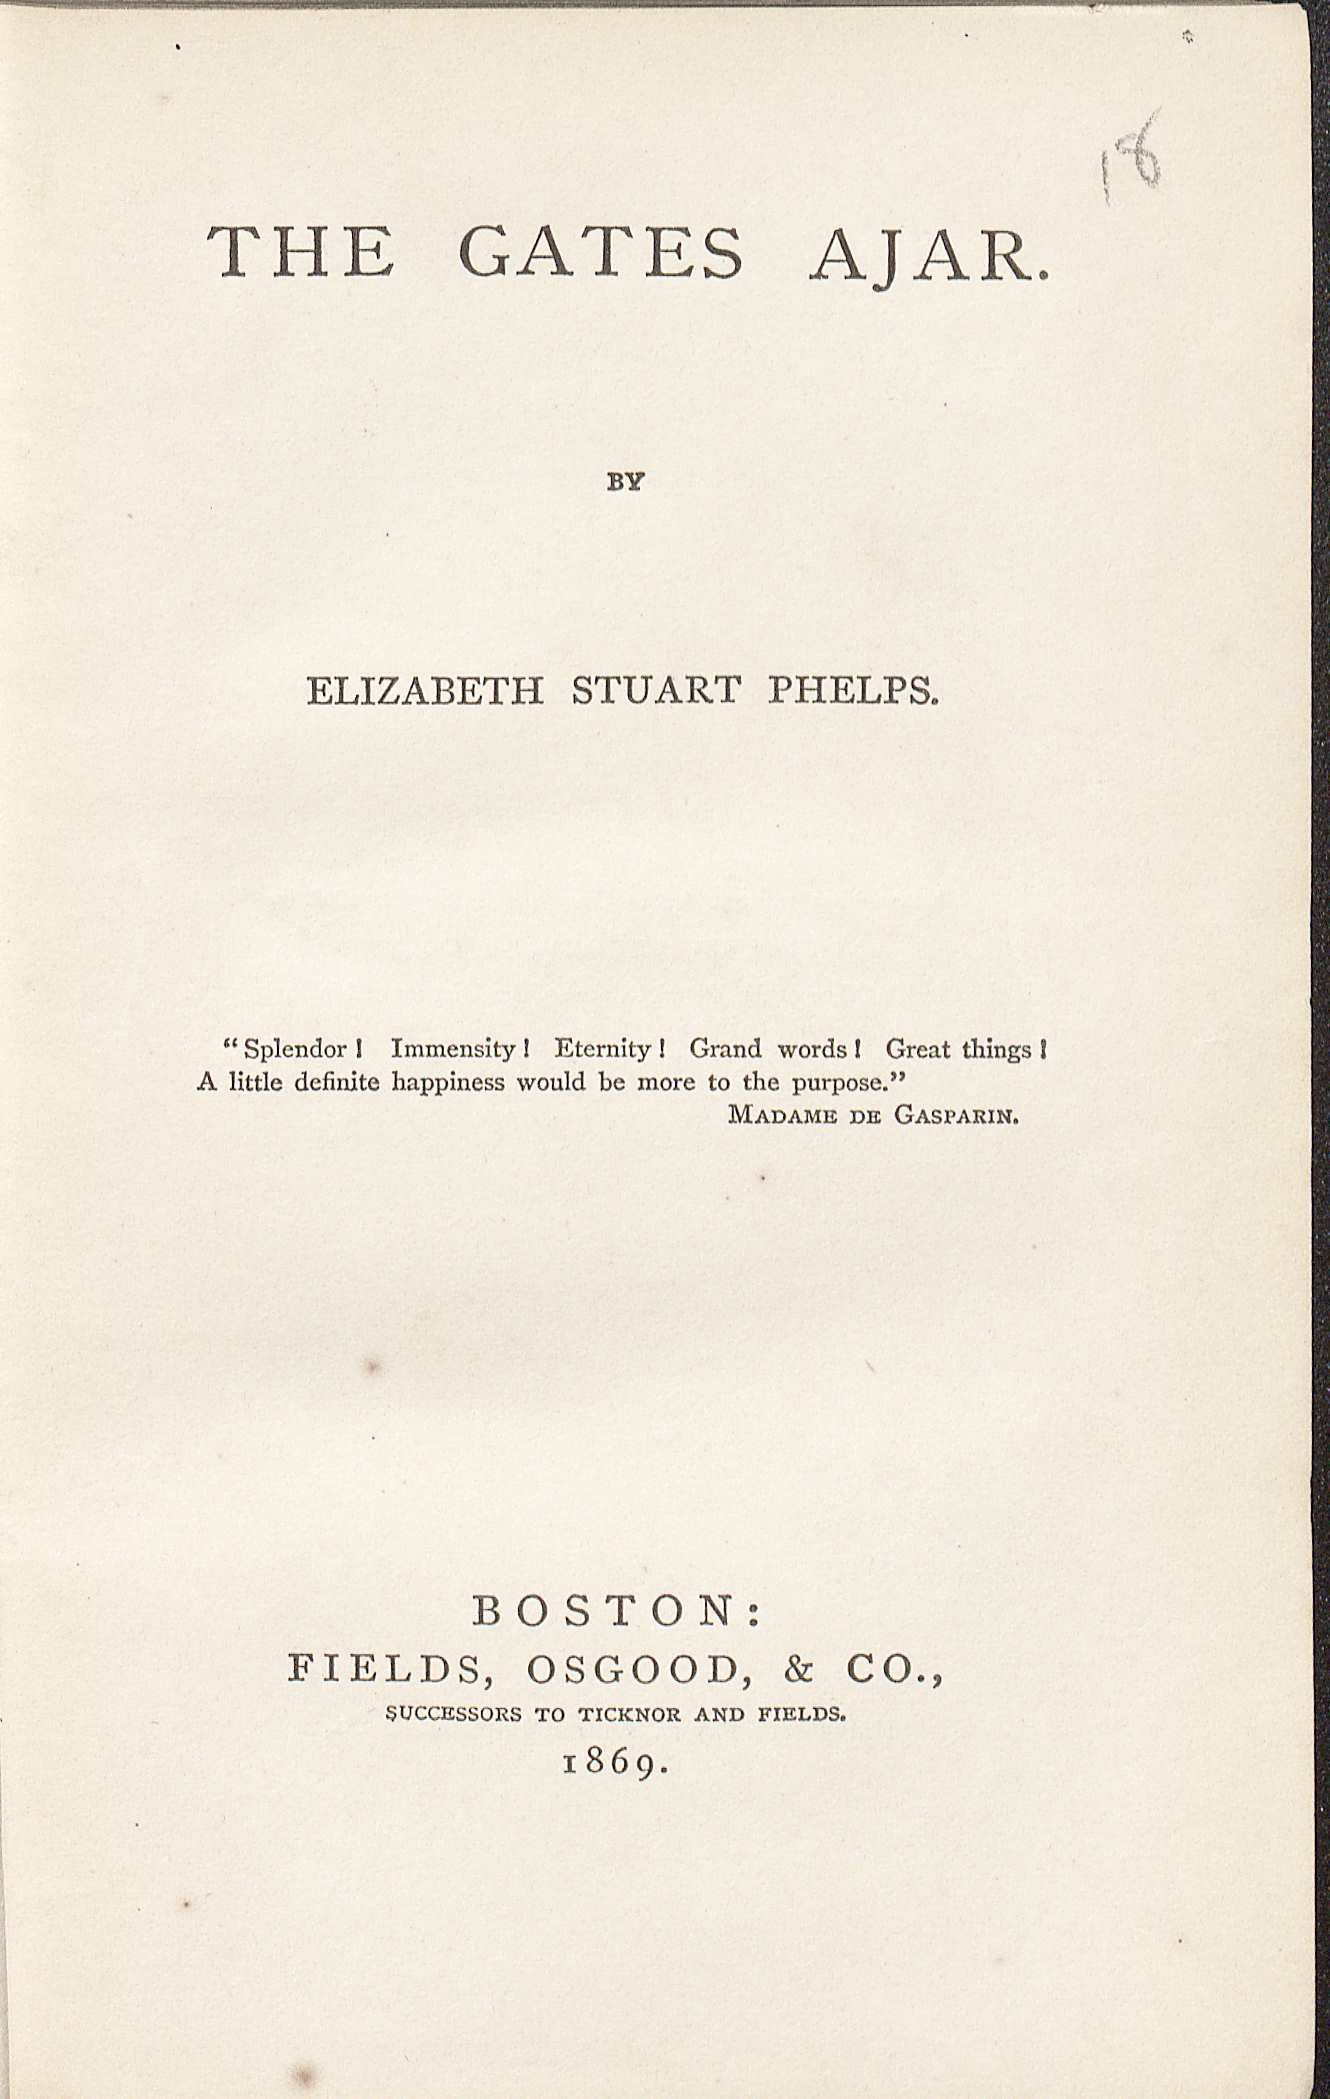 Title page of the first printing of The Gates Ajar by Elizabeth Stuart Phelps Ward. (PS3142 .G3 1869. Image by Petrina Jackson)